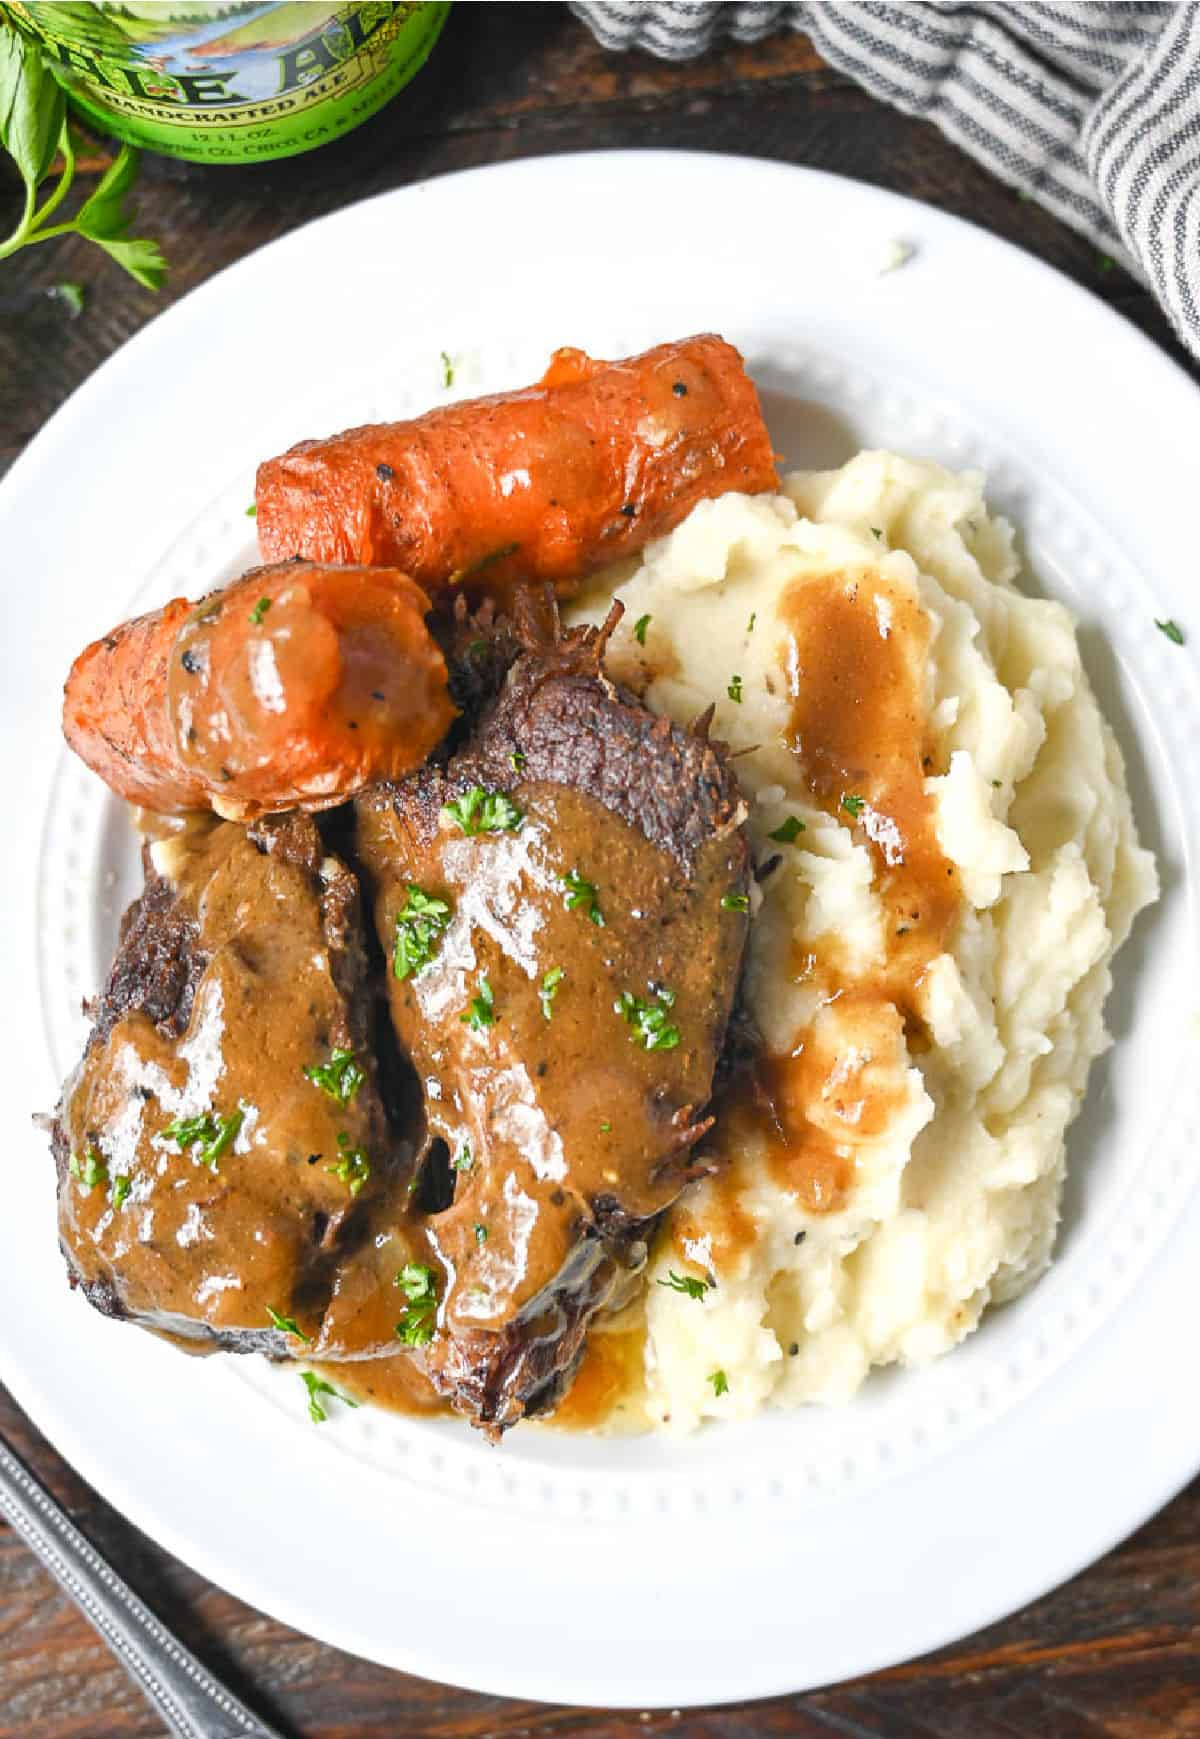 A white plate with mashed potatoes, pot roast, gravy and roasted carrots.